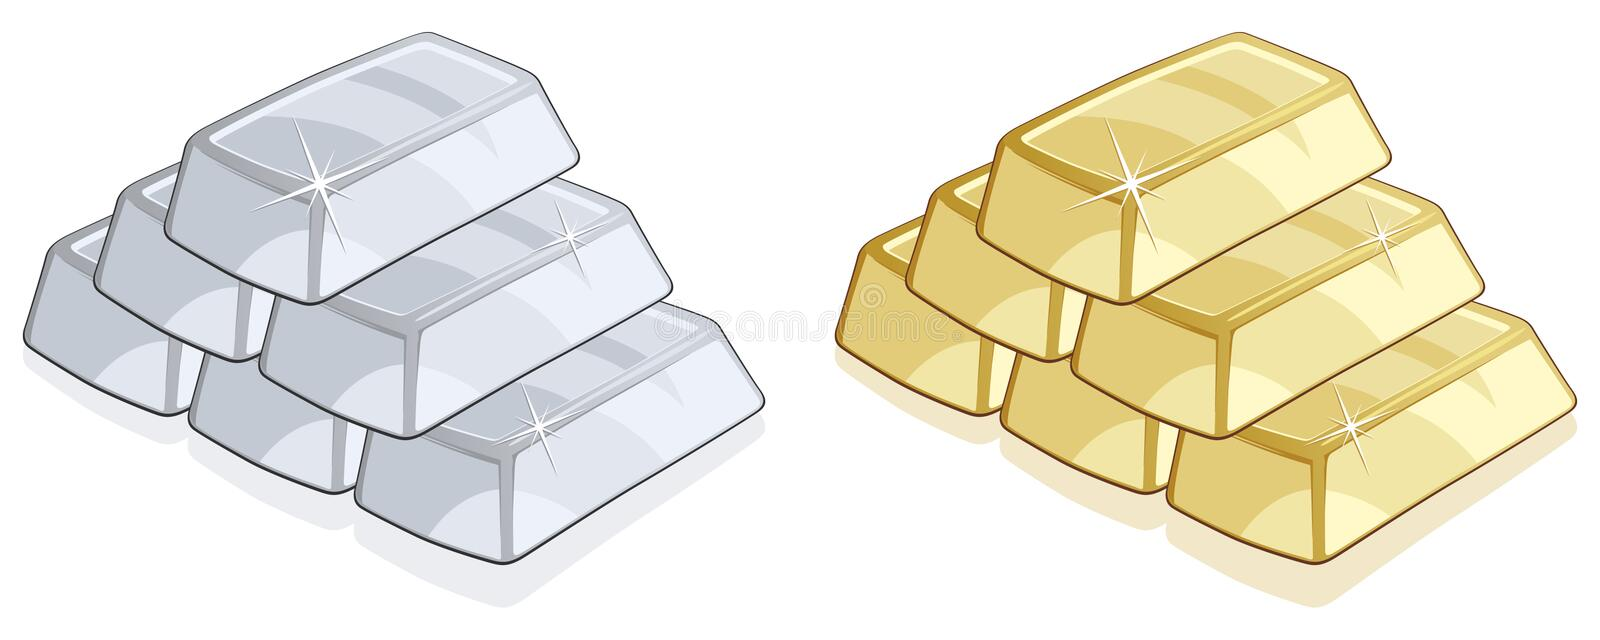 Gold And Silver Bars Royalty Free Stock Images Image